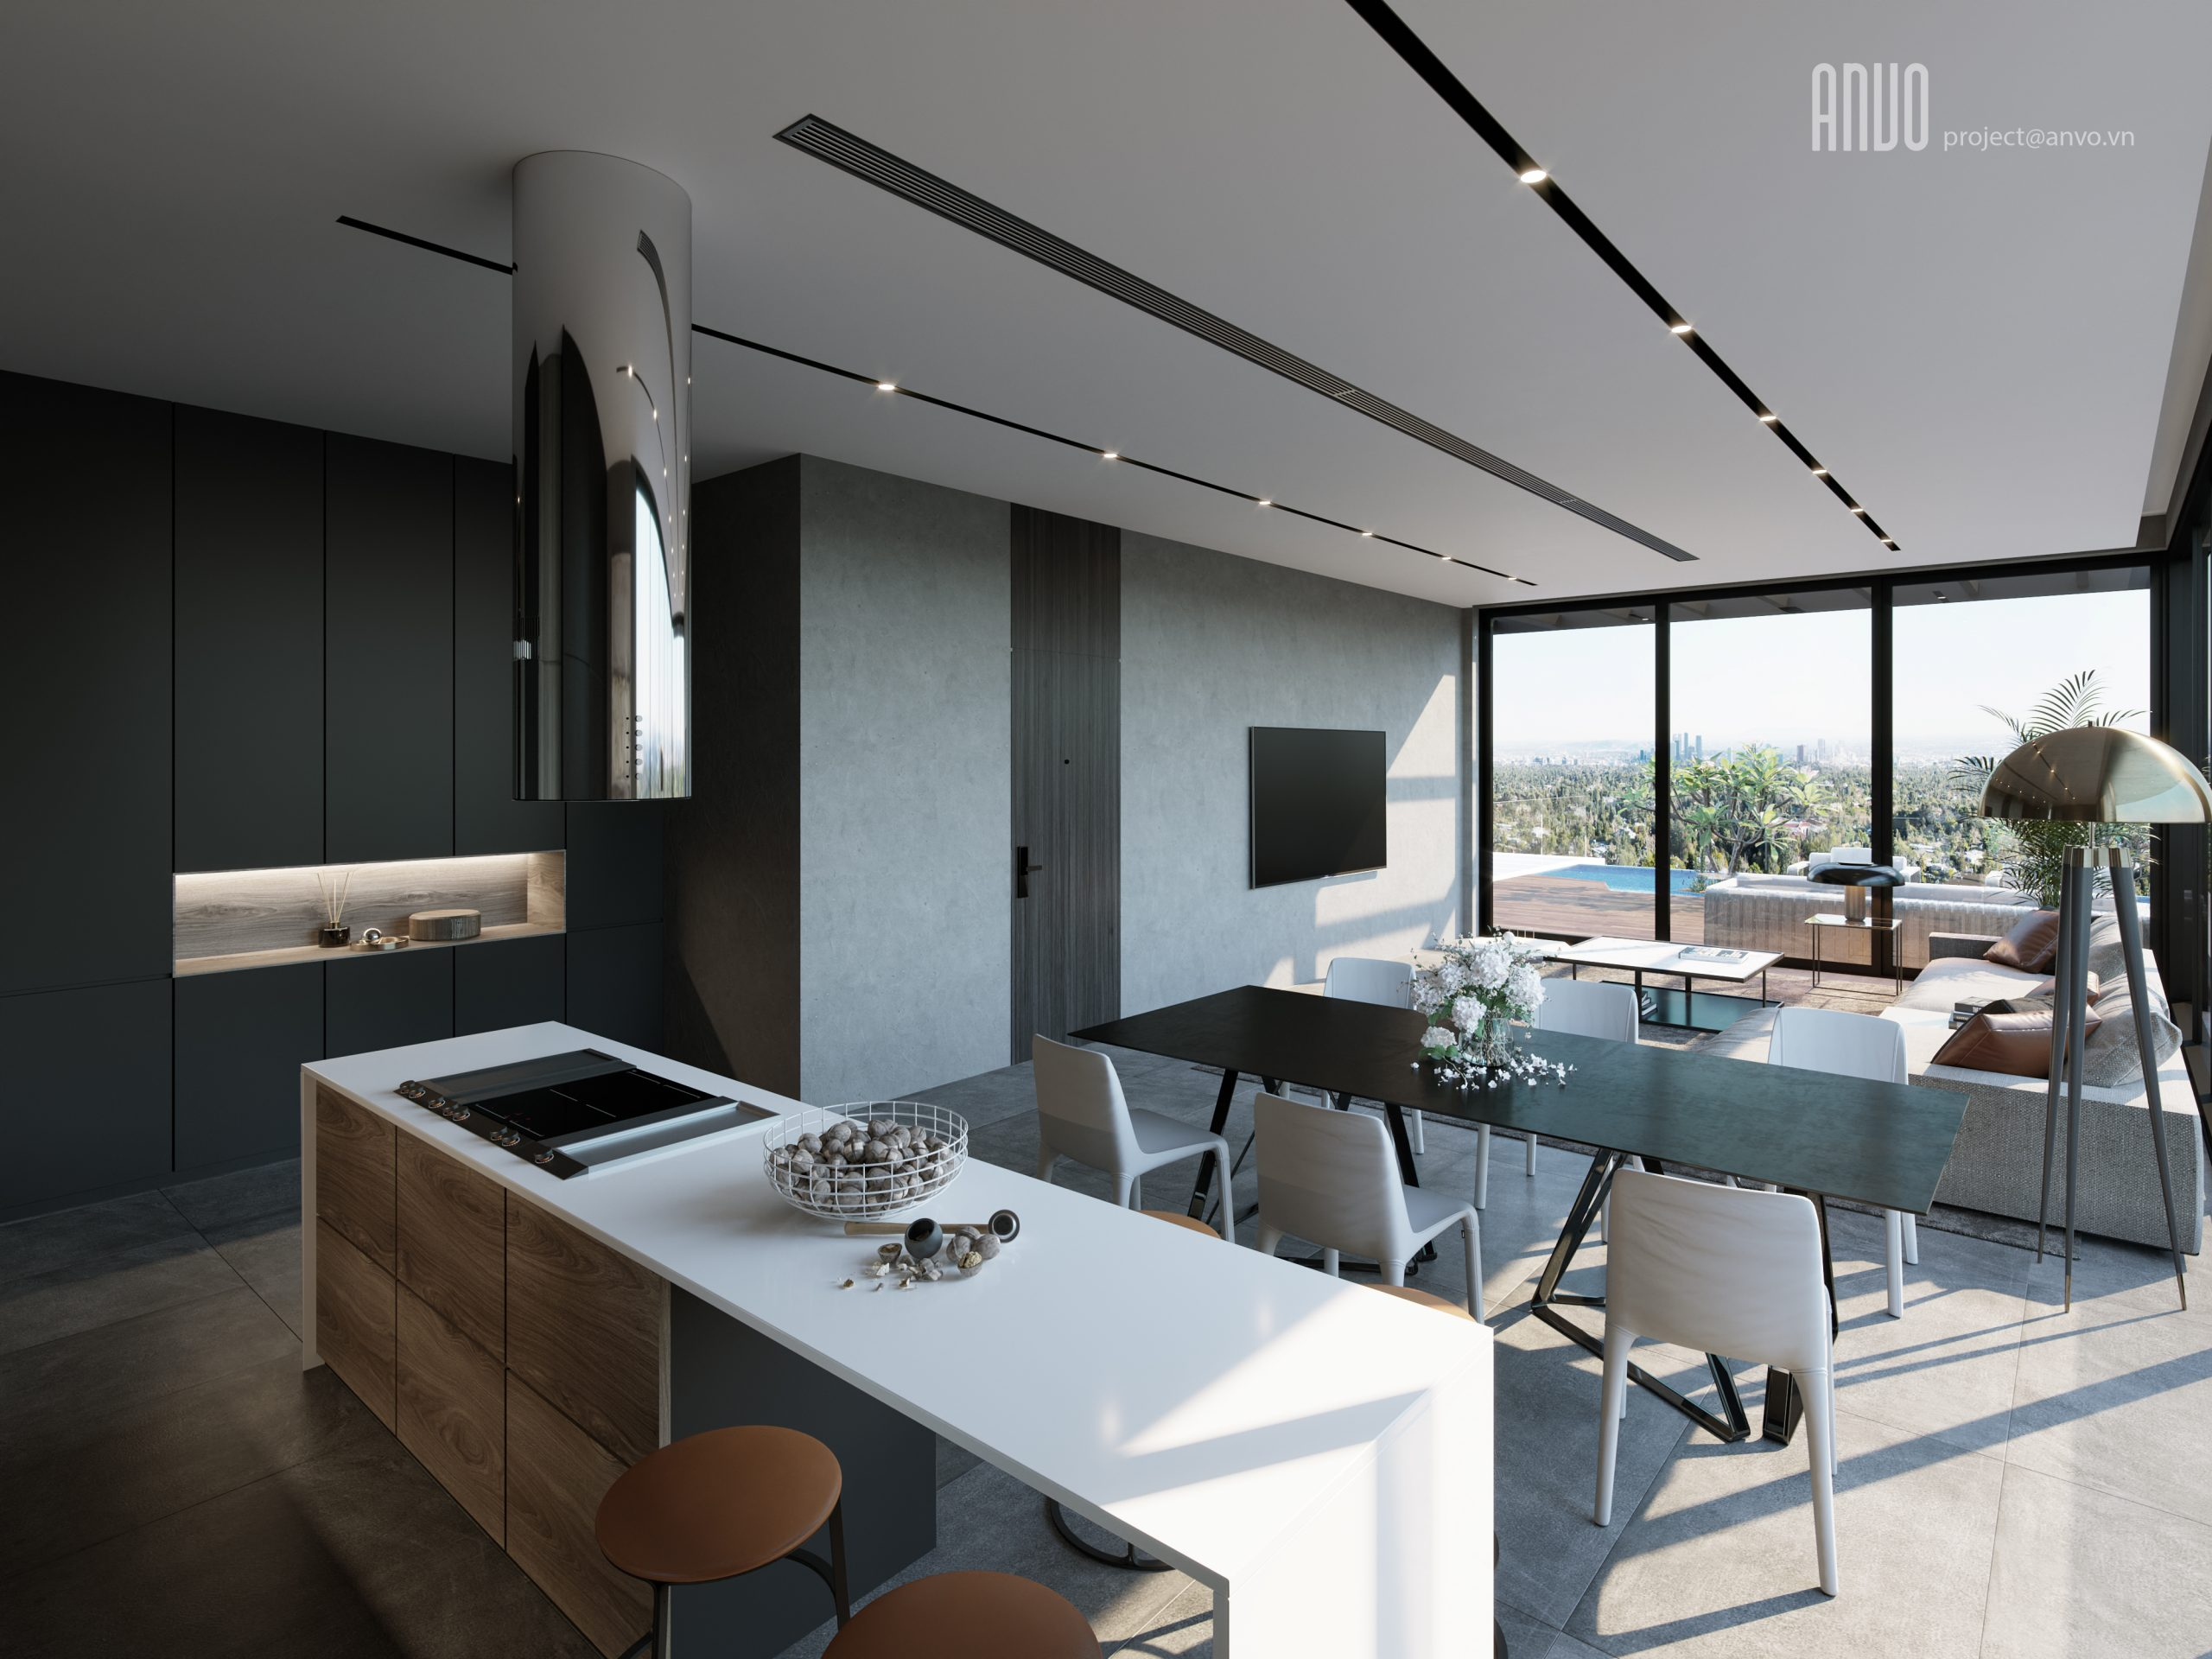 Penthouse_anvo.vn_03